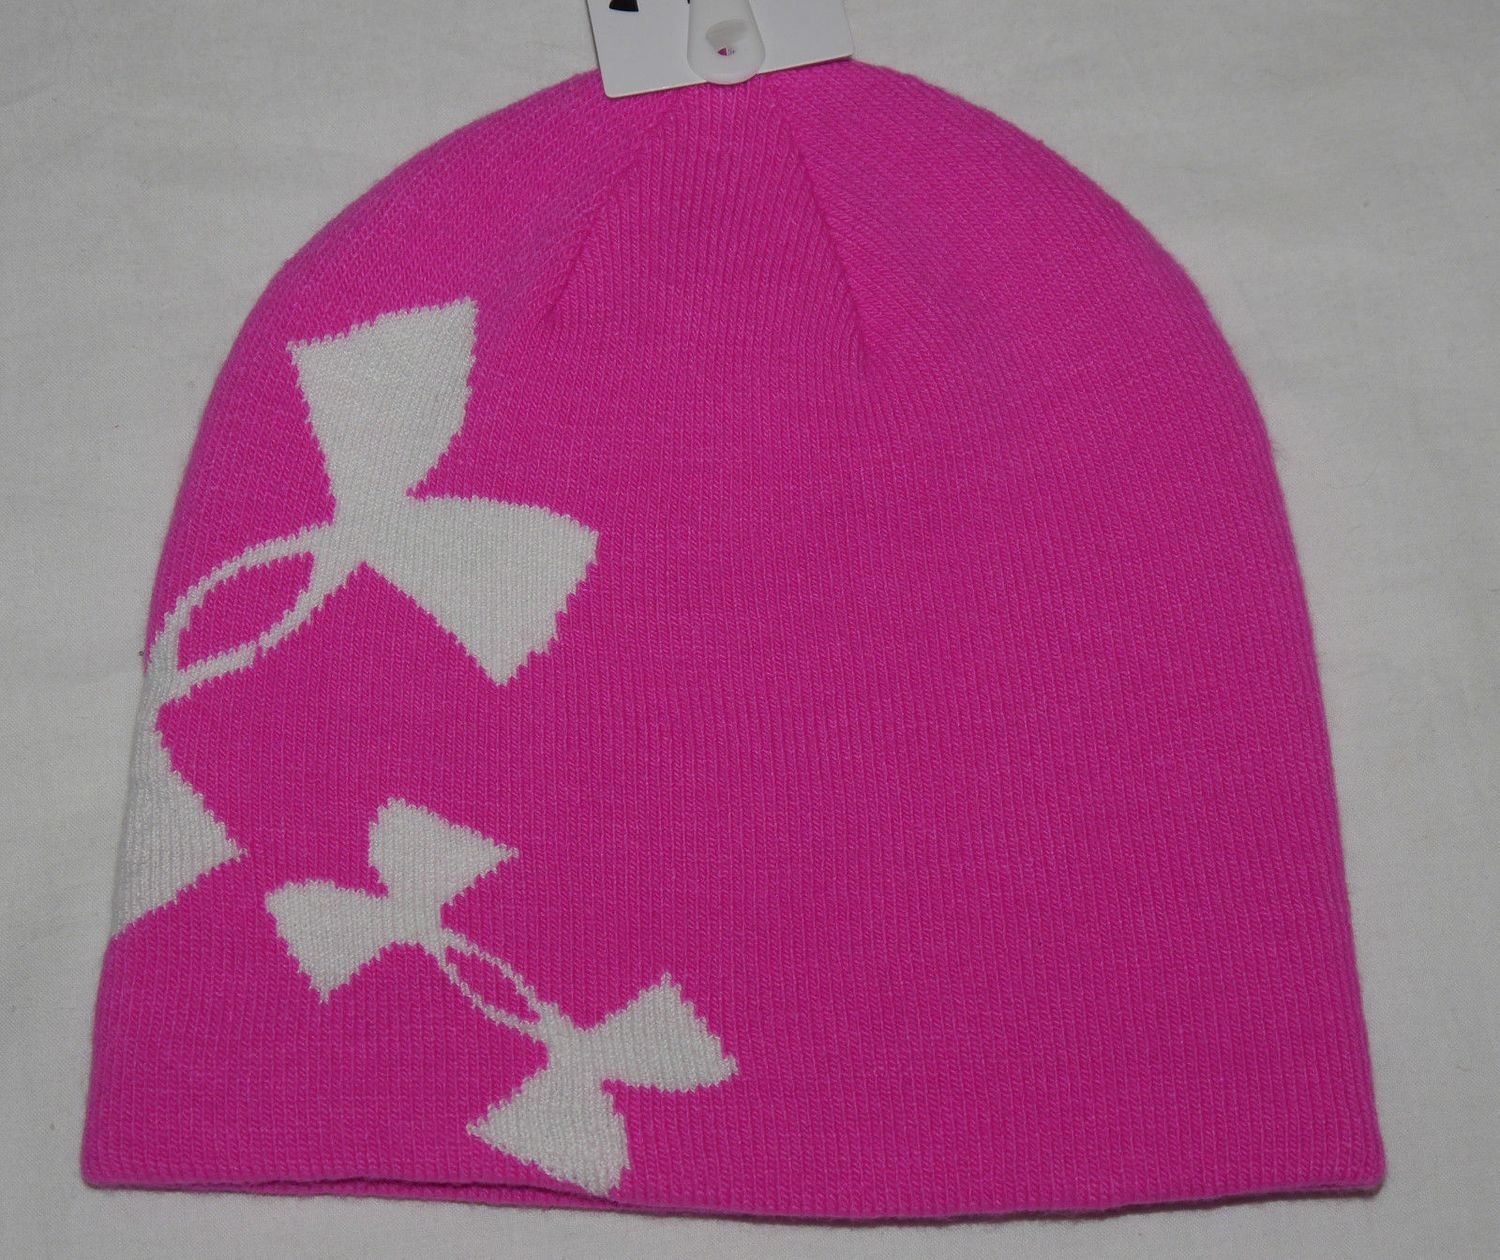 Under Armour Youth Girl's Rebel Pink/White Reversible to Gray/Black Beanie Hat